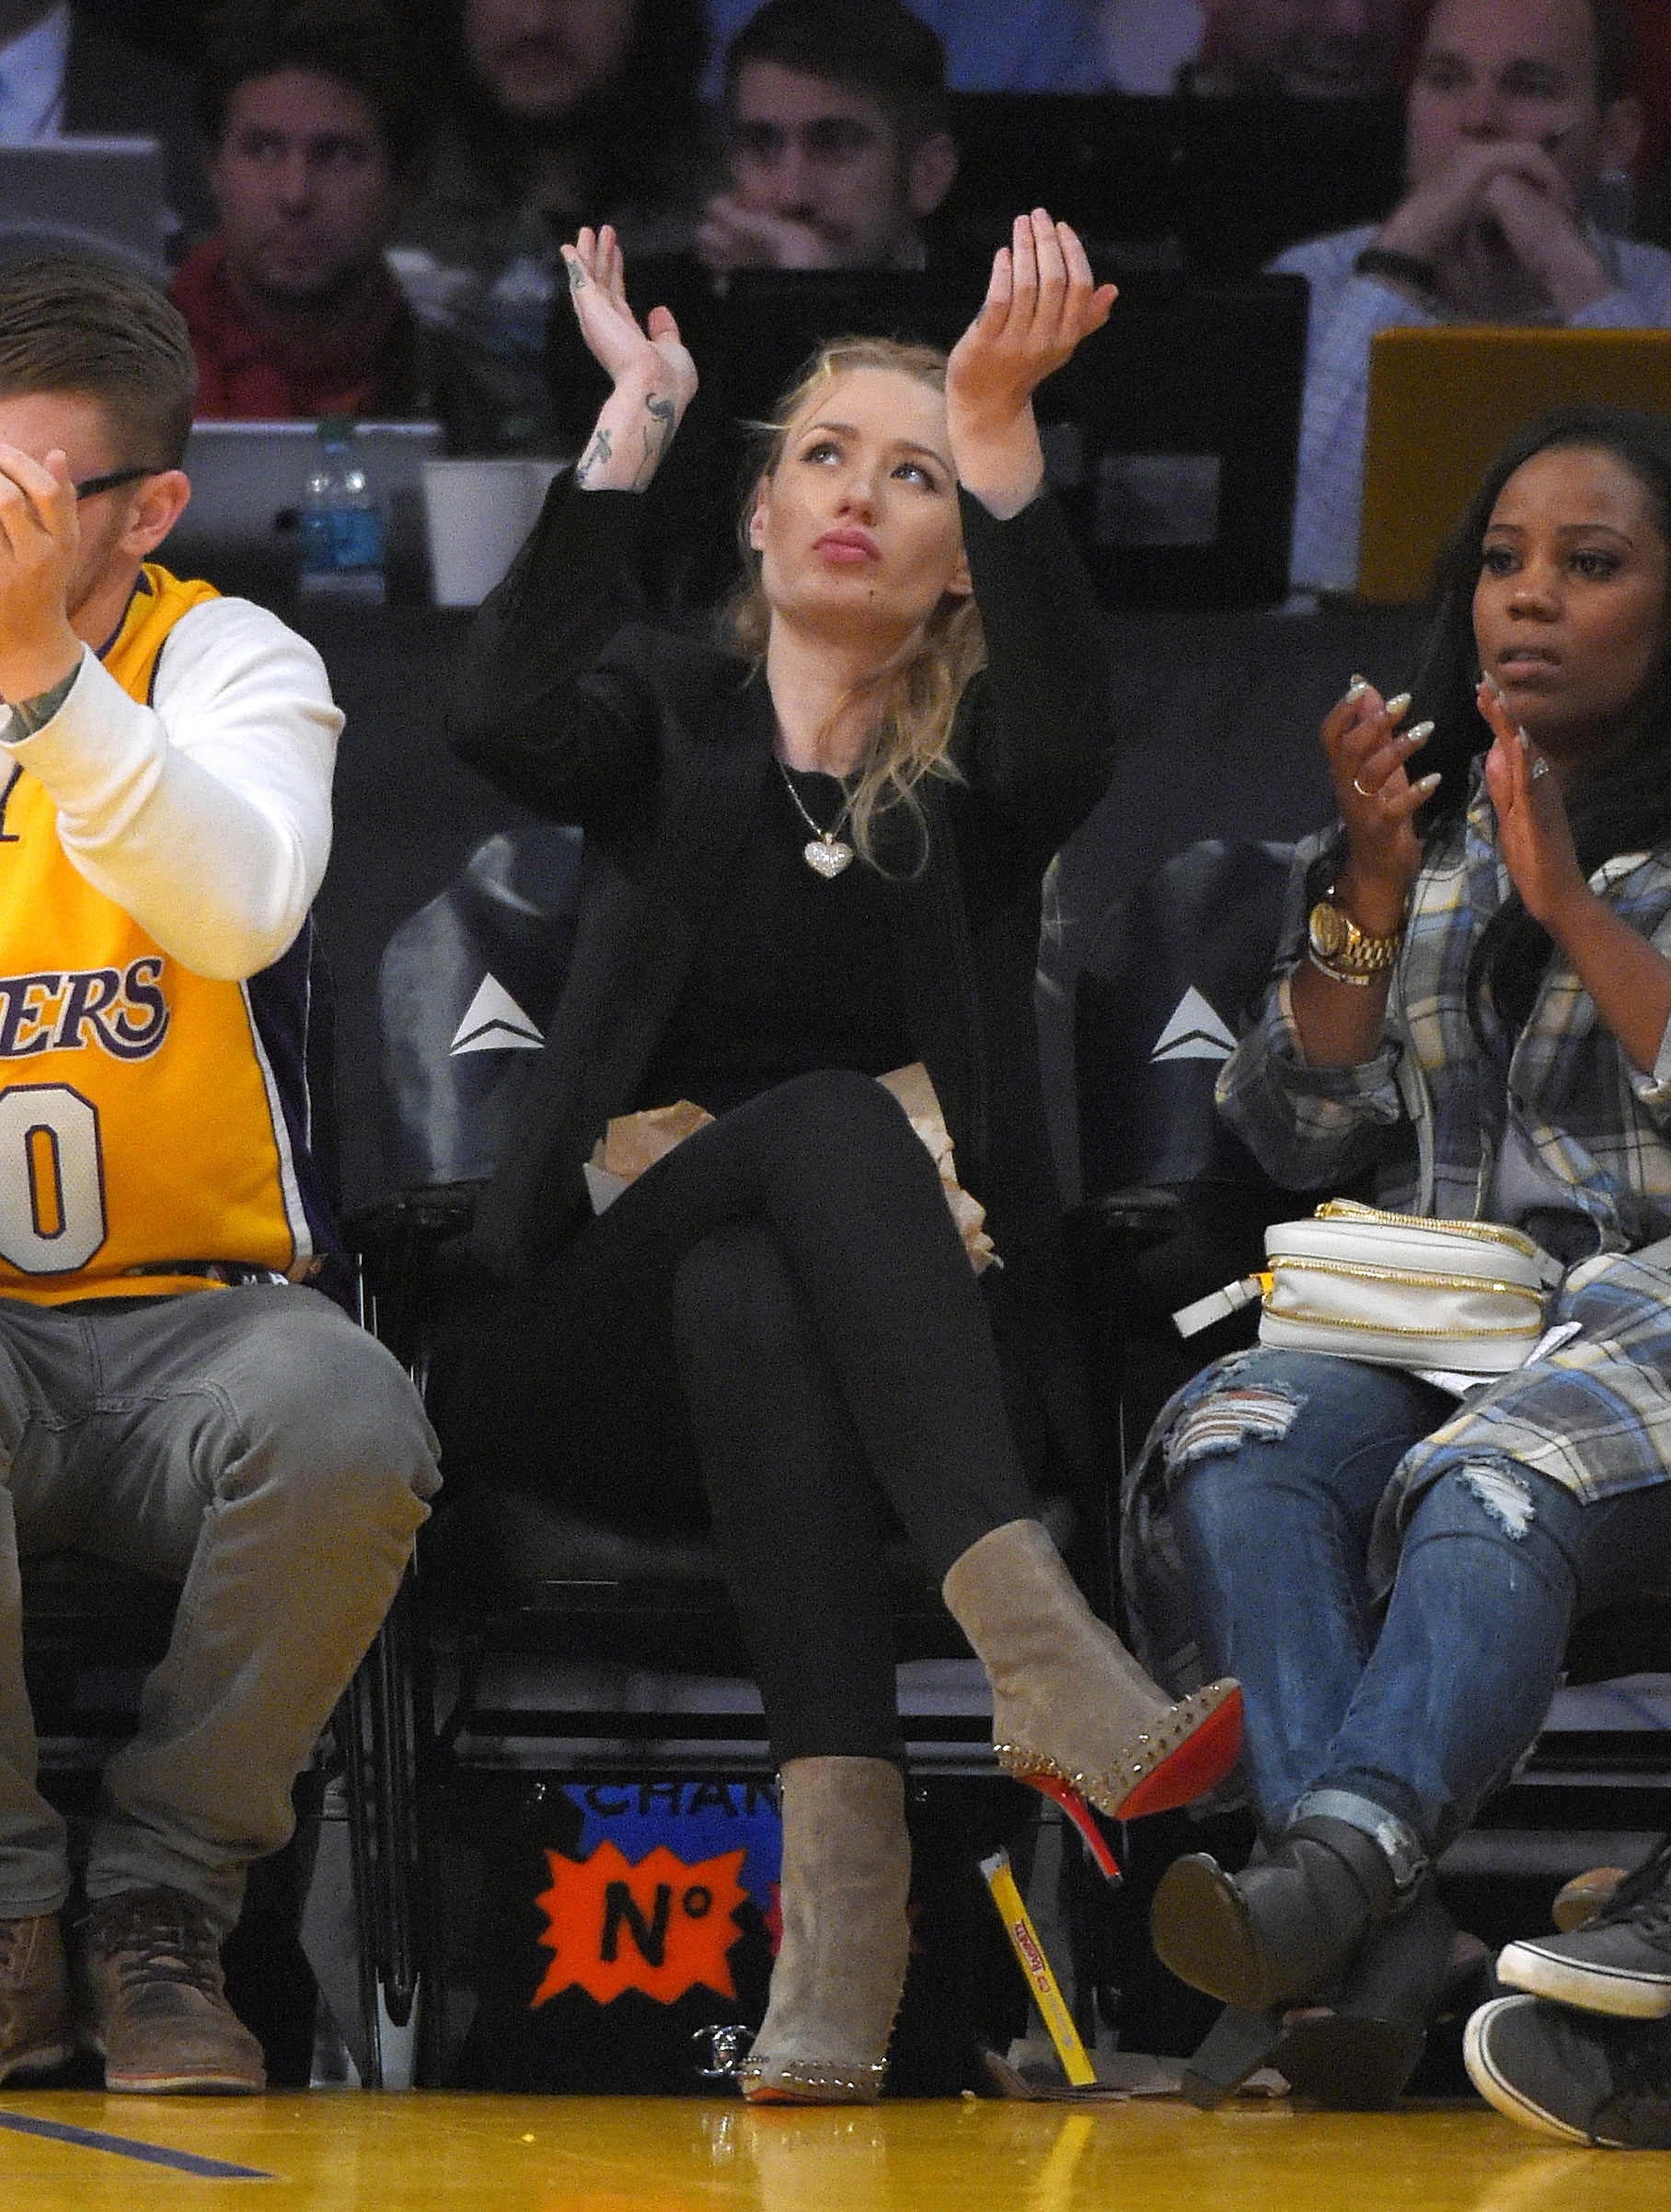 iggy azalea dating laker Iggy azalea smiles for a picture on her way out of crustacean restaurant on thursday night (july 10) in beverly hills, calif the 24-year-old rapper hit the town with her boyfriend, los.